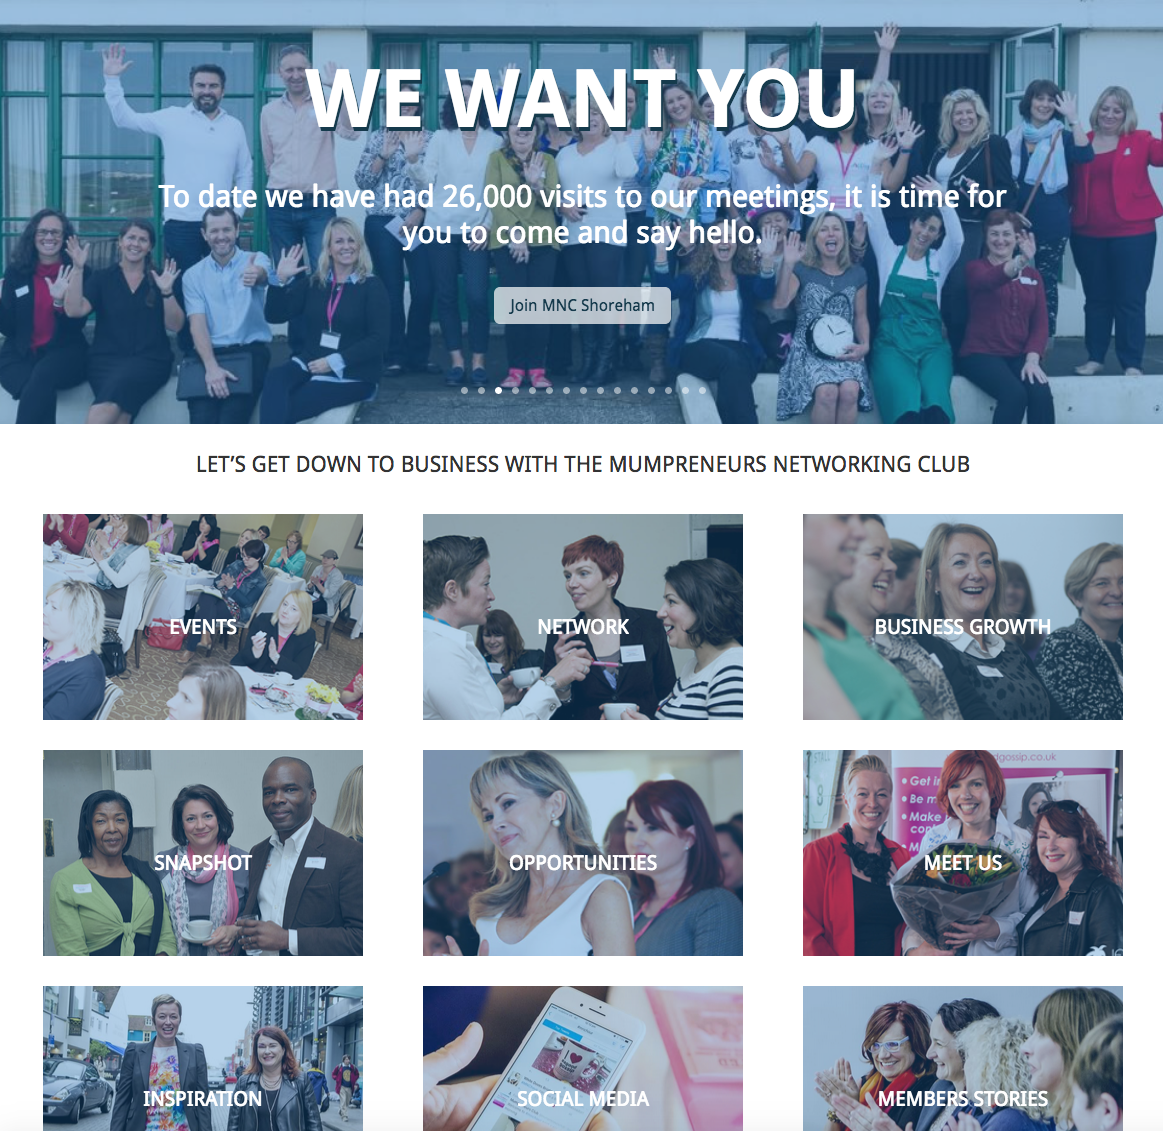 Web design for The Mumpreneurs Networking Club